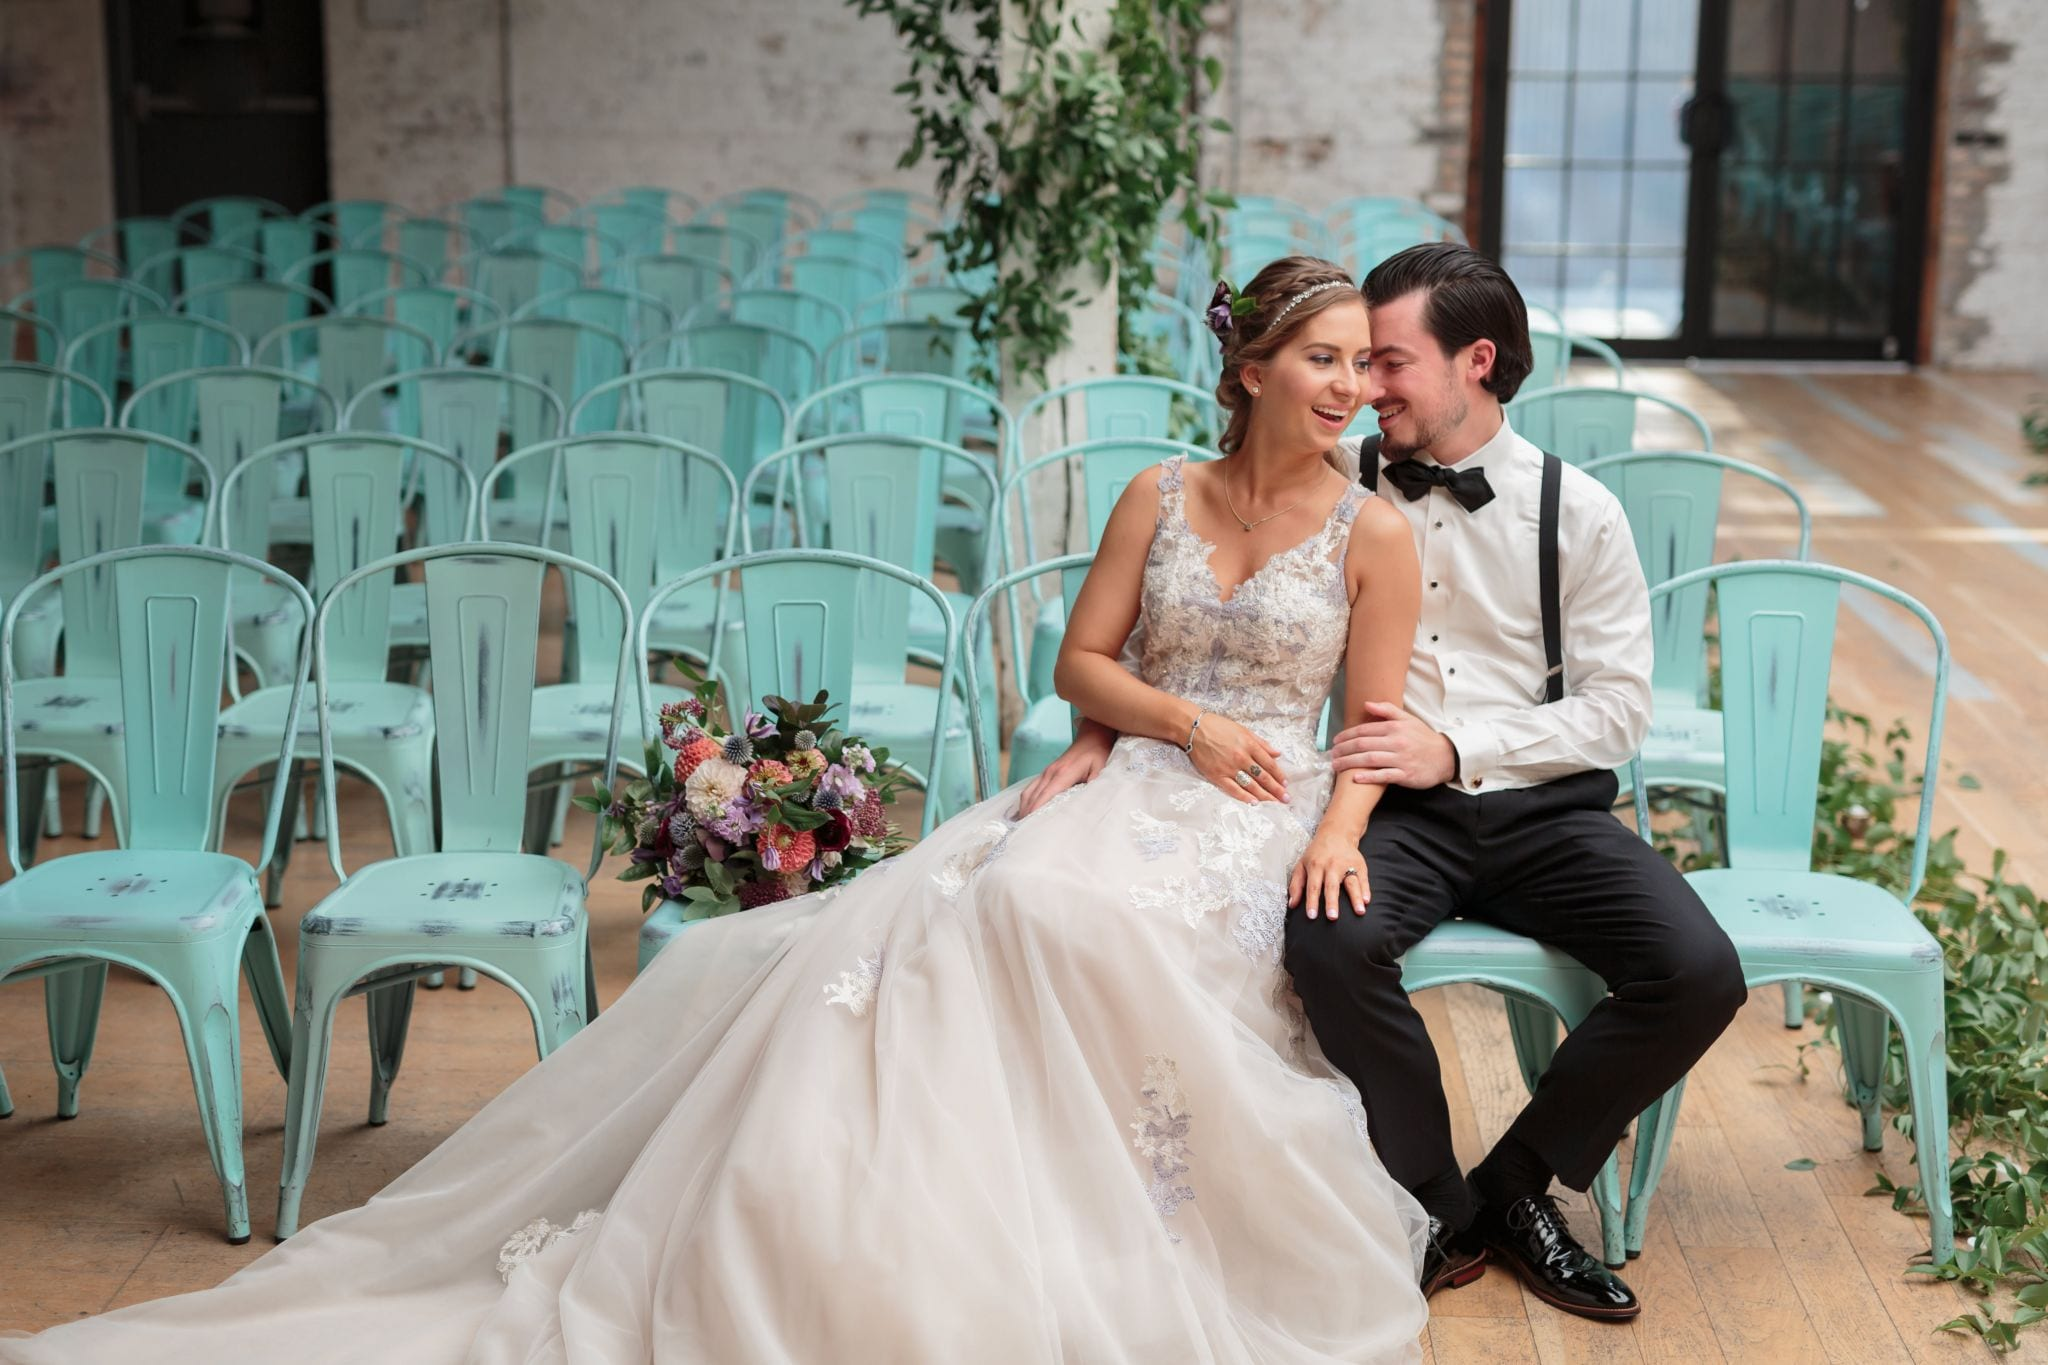 Wedding Photography The Joinery Chicago